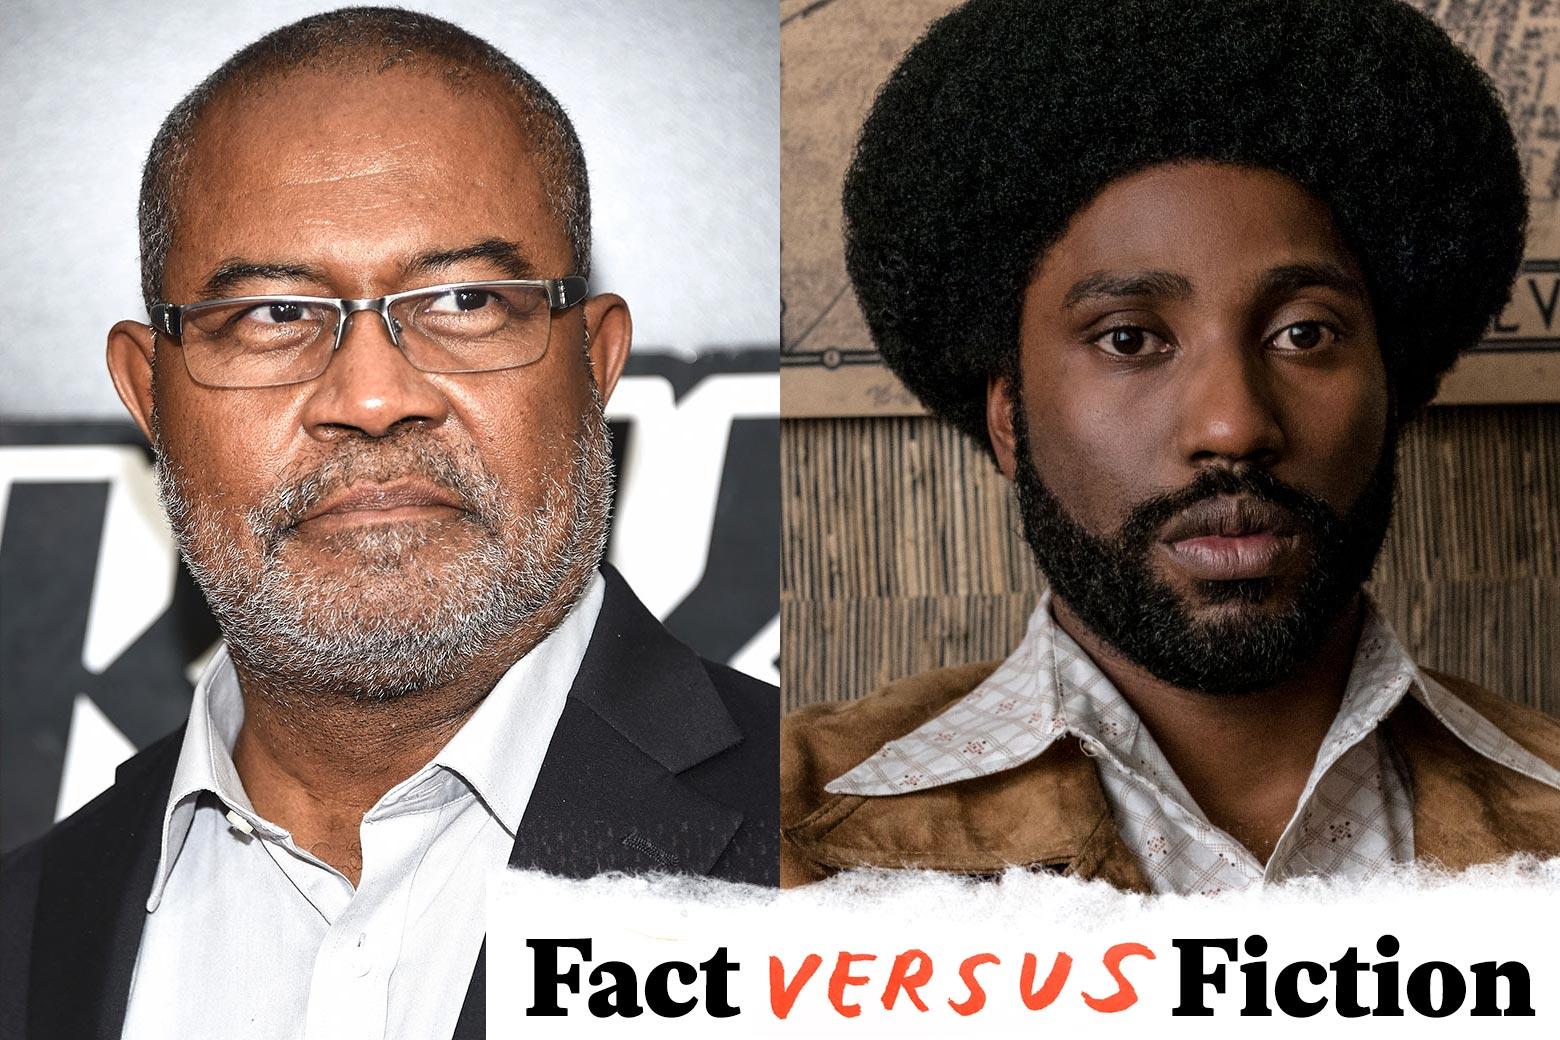 Ron Stallworth in 2018, and John David Washington as Ron Stallworth in BlacKkKlansman.